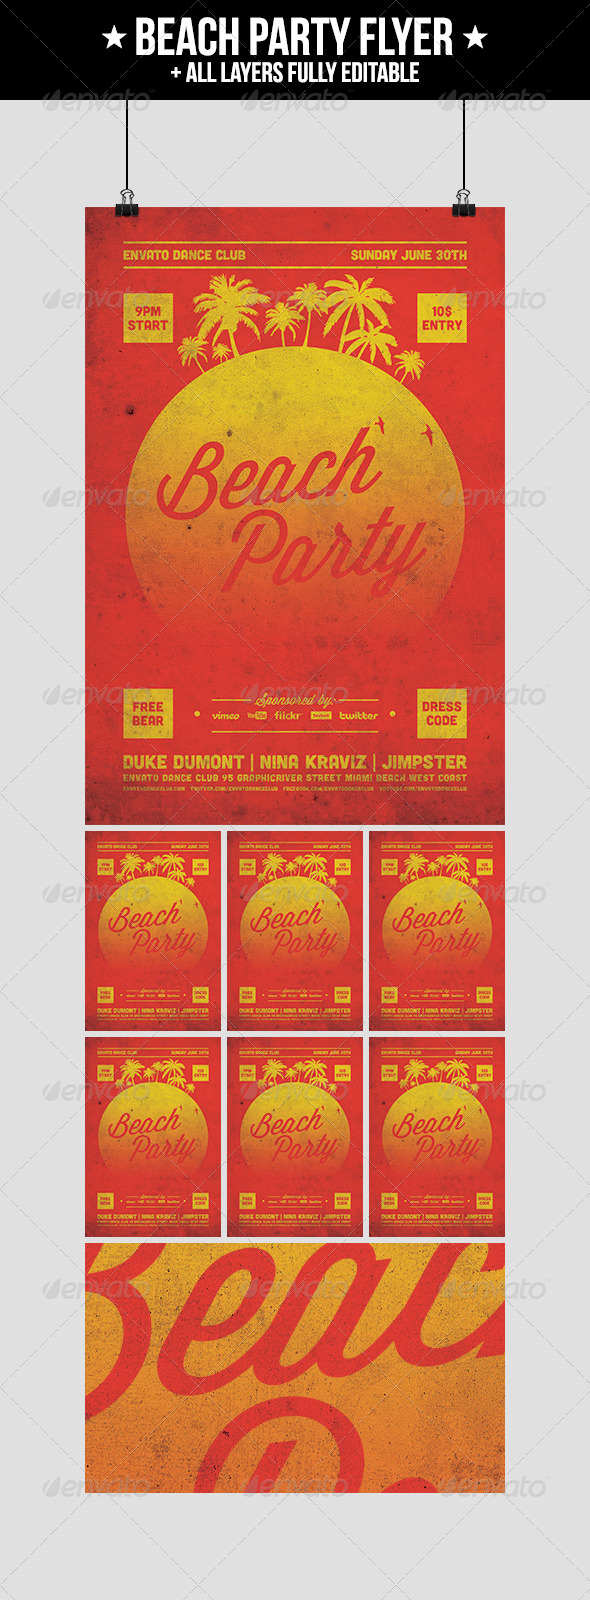 GraphicRiver Beach Party Flyer 4822247